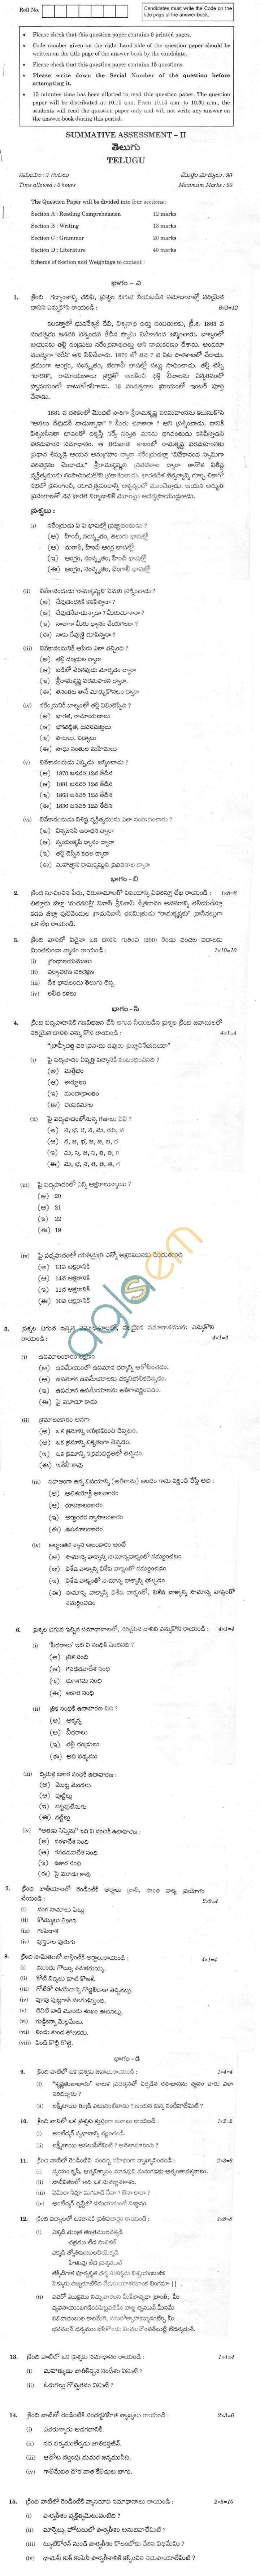 CBSE Compartment Exam 2013 Class X Question Paper - Telugu